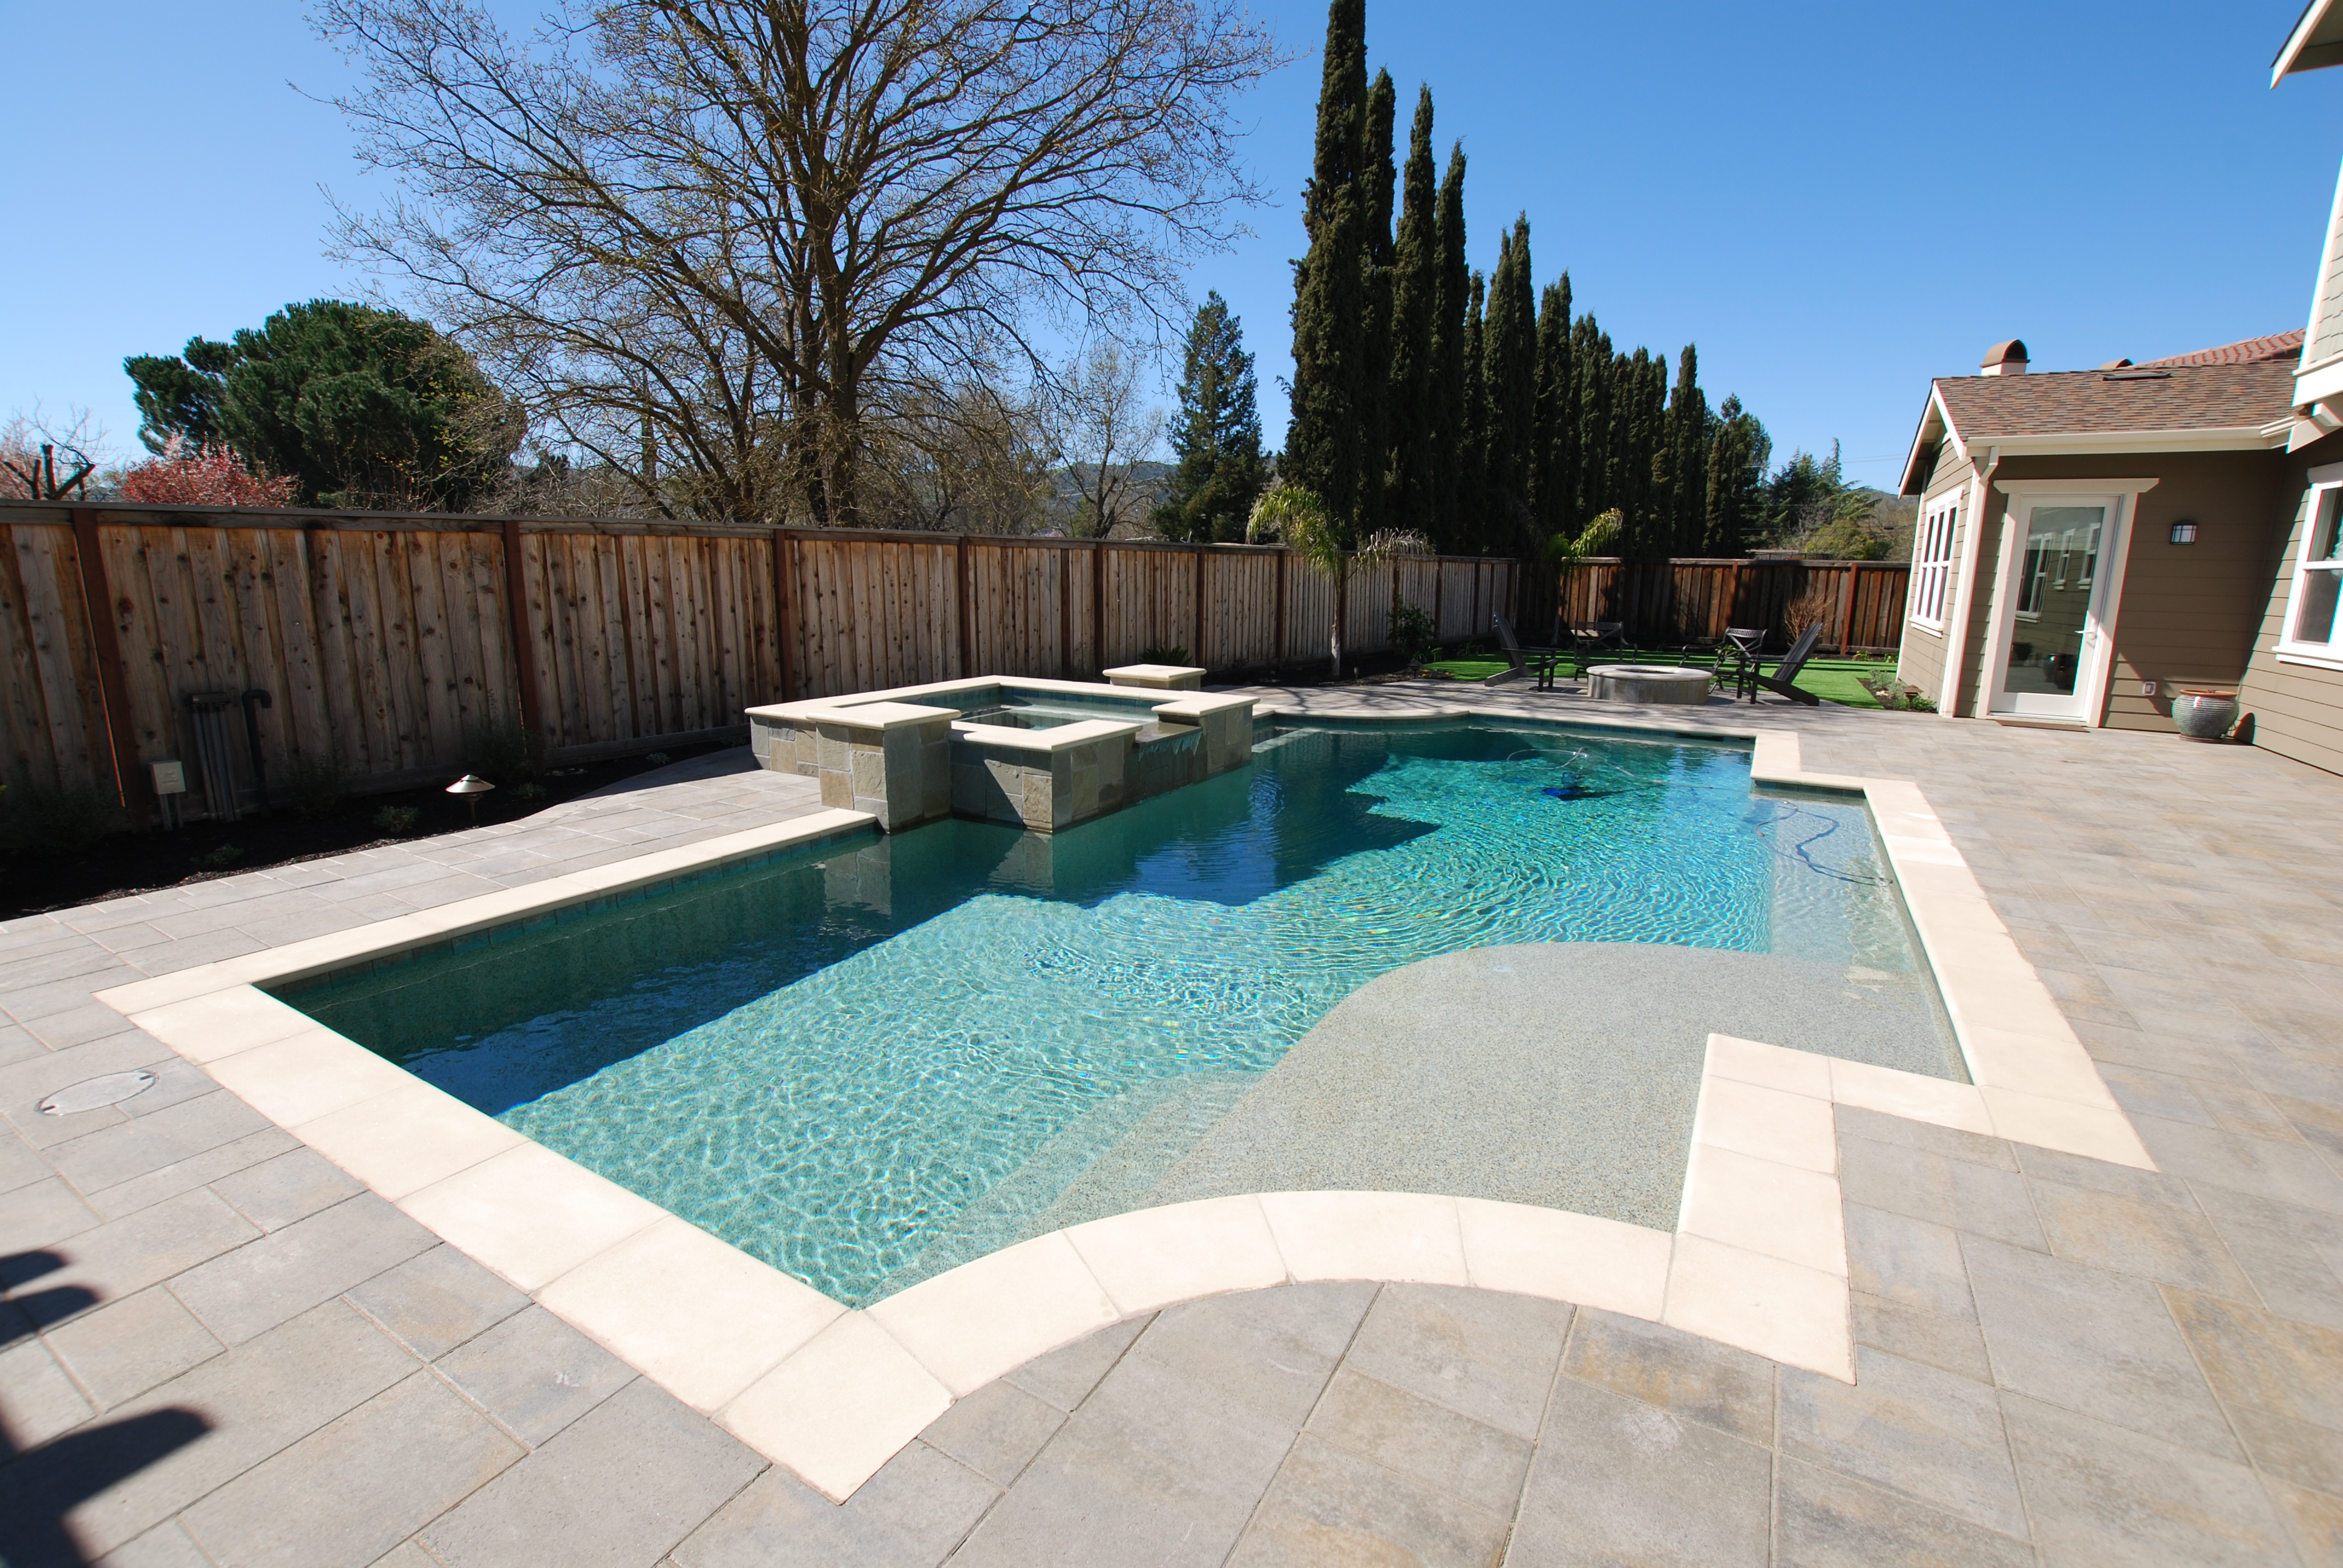 Swimming Pool Maintenance Service 91786 : Pool maintenance service cleaning and